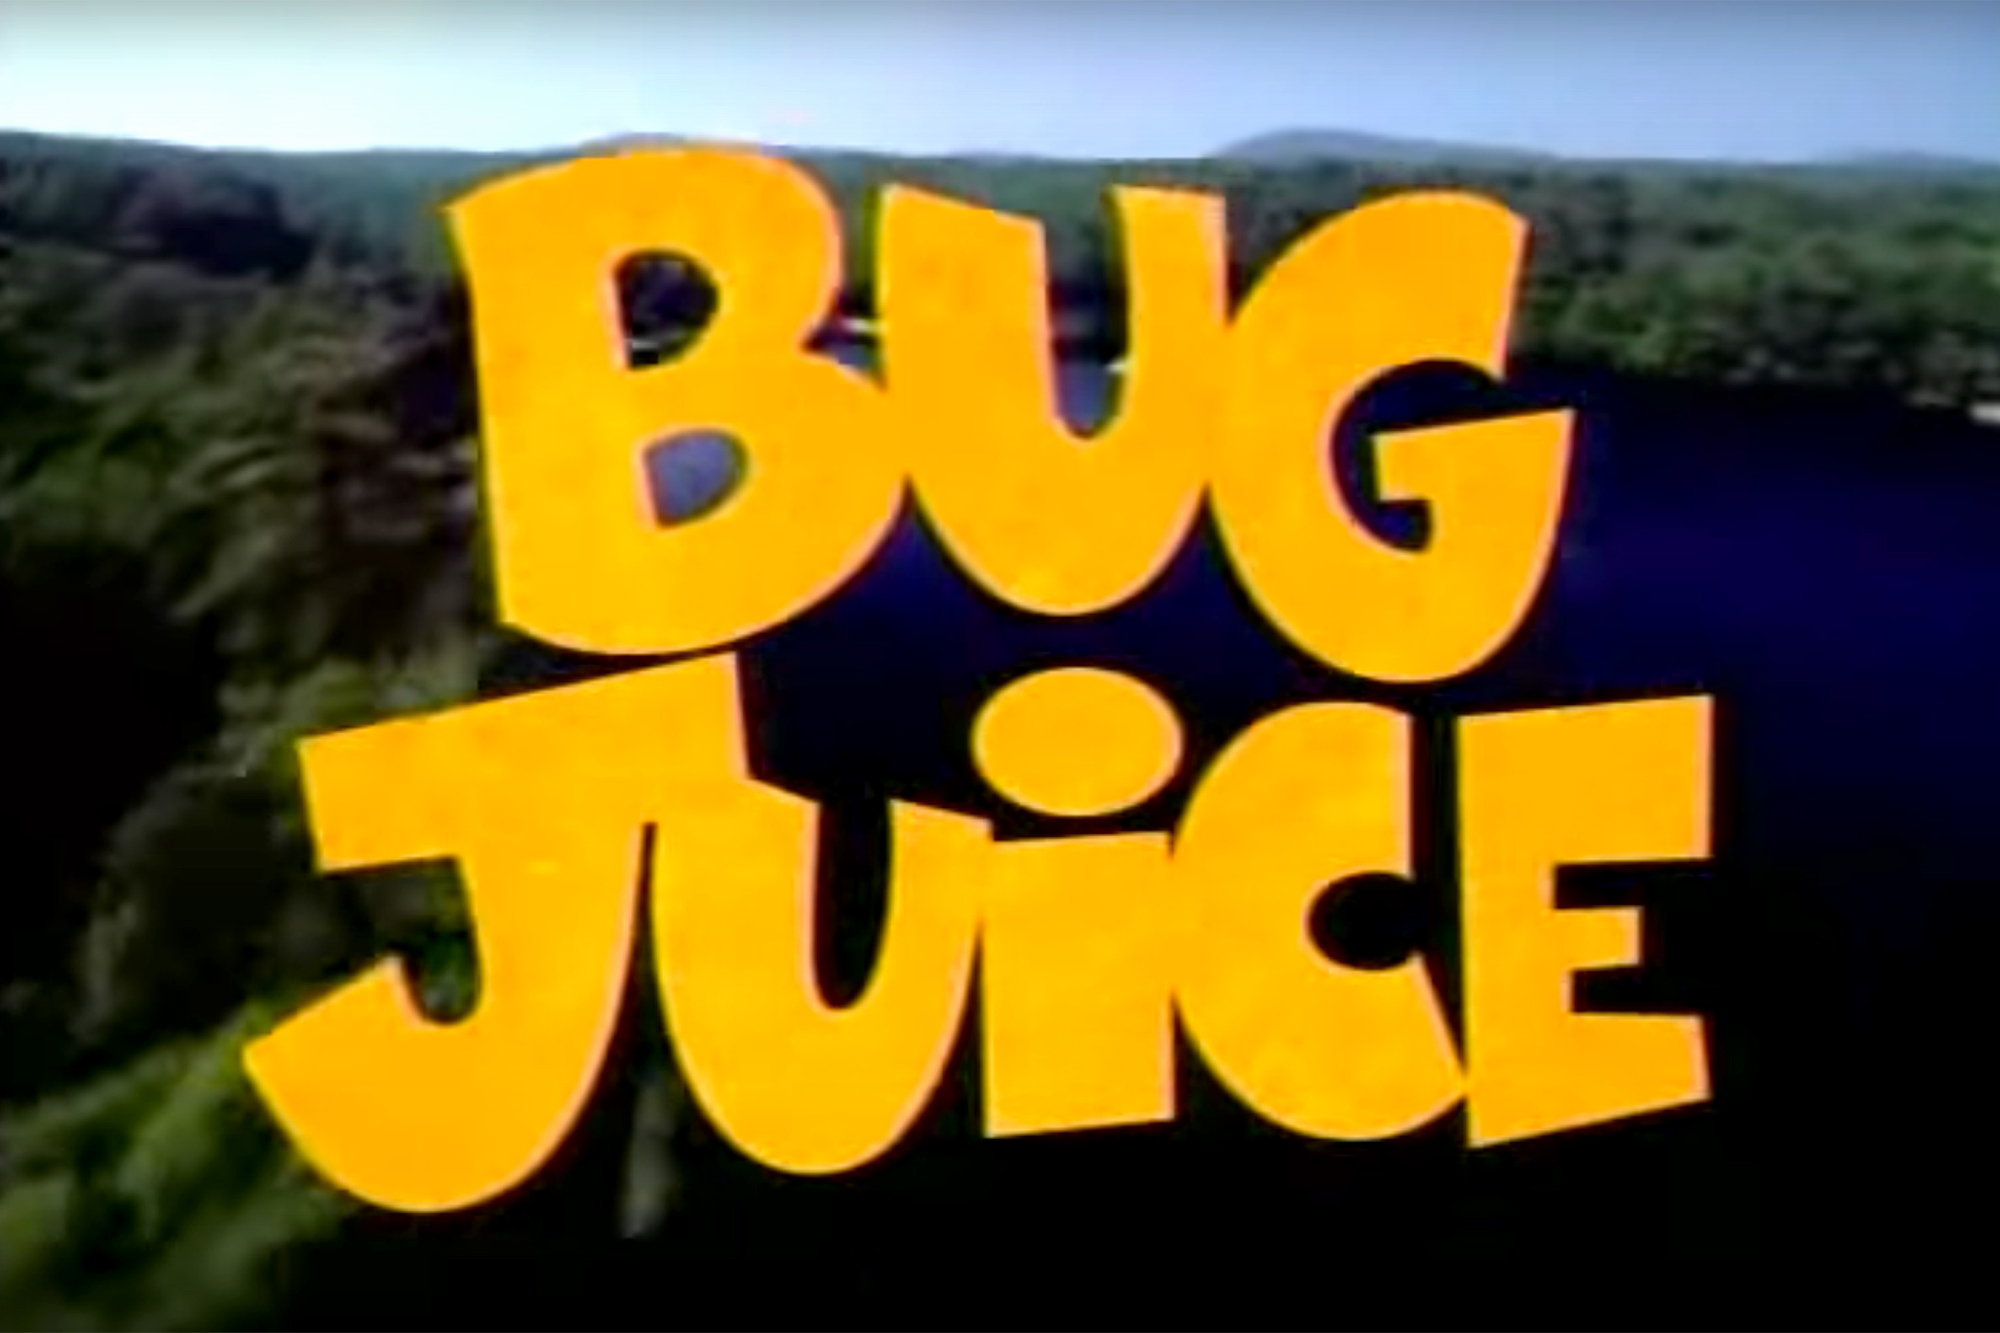 Disney Channel is Bringing Back Bug Juice